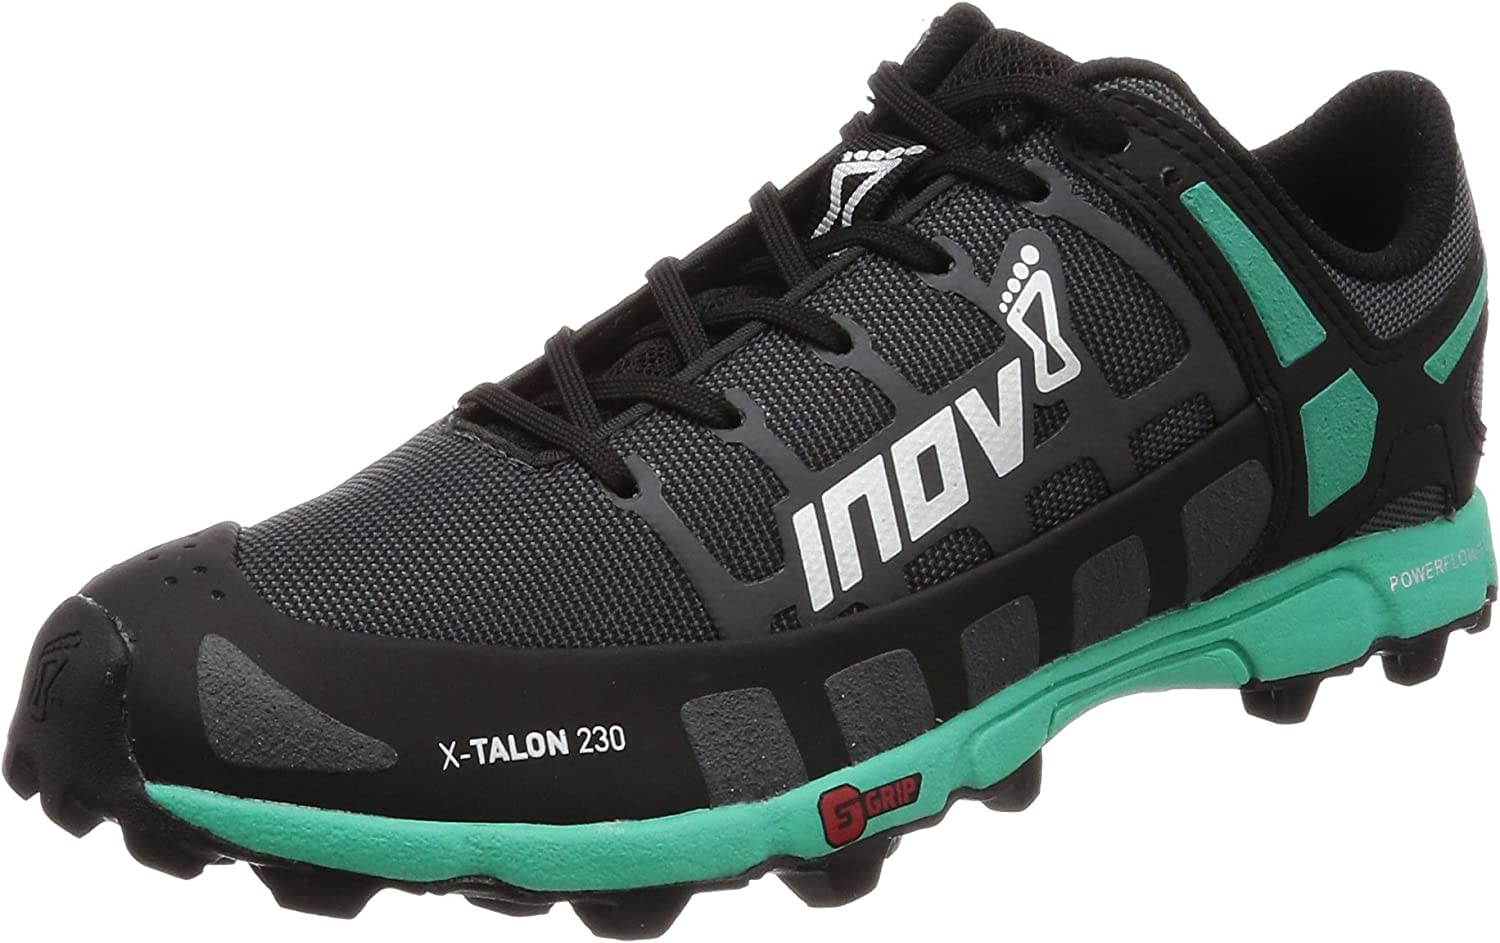 INOV-8 Womens X-Talon 230 – Lightweight OCR Trail Running Shoes – for Spartan, Obstacle Races and Mud Run – Grey Teal 9 W US